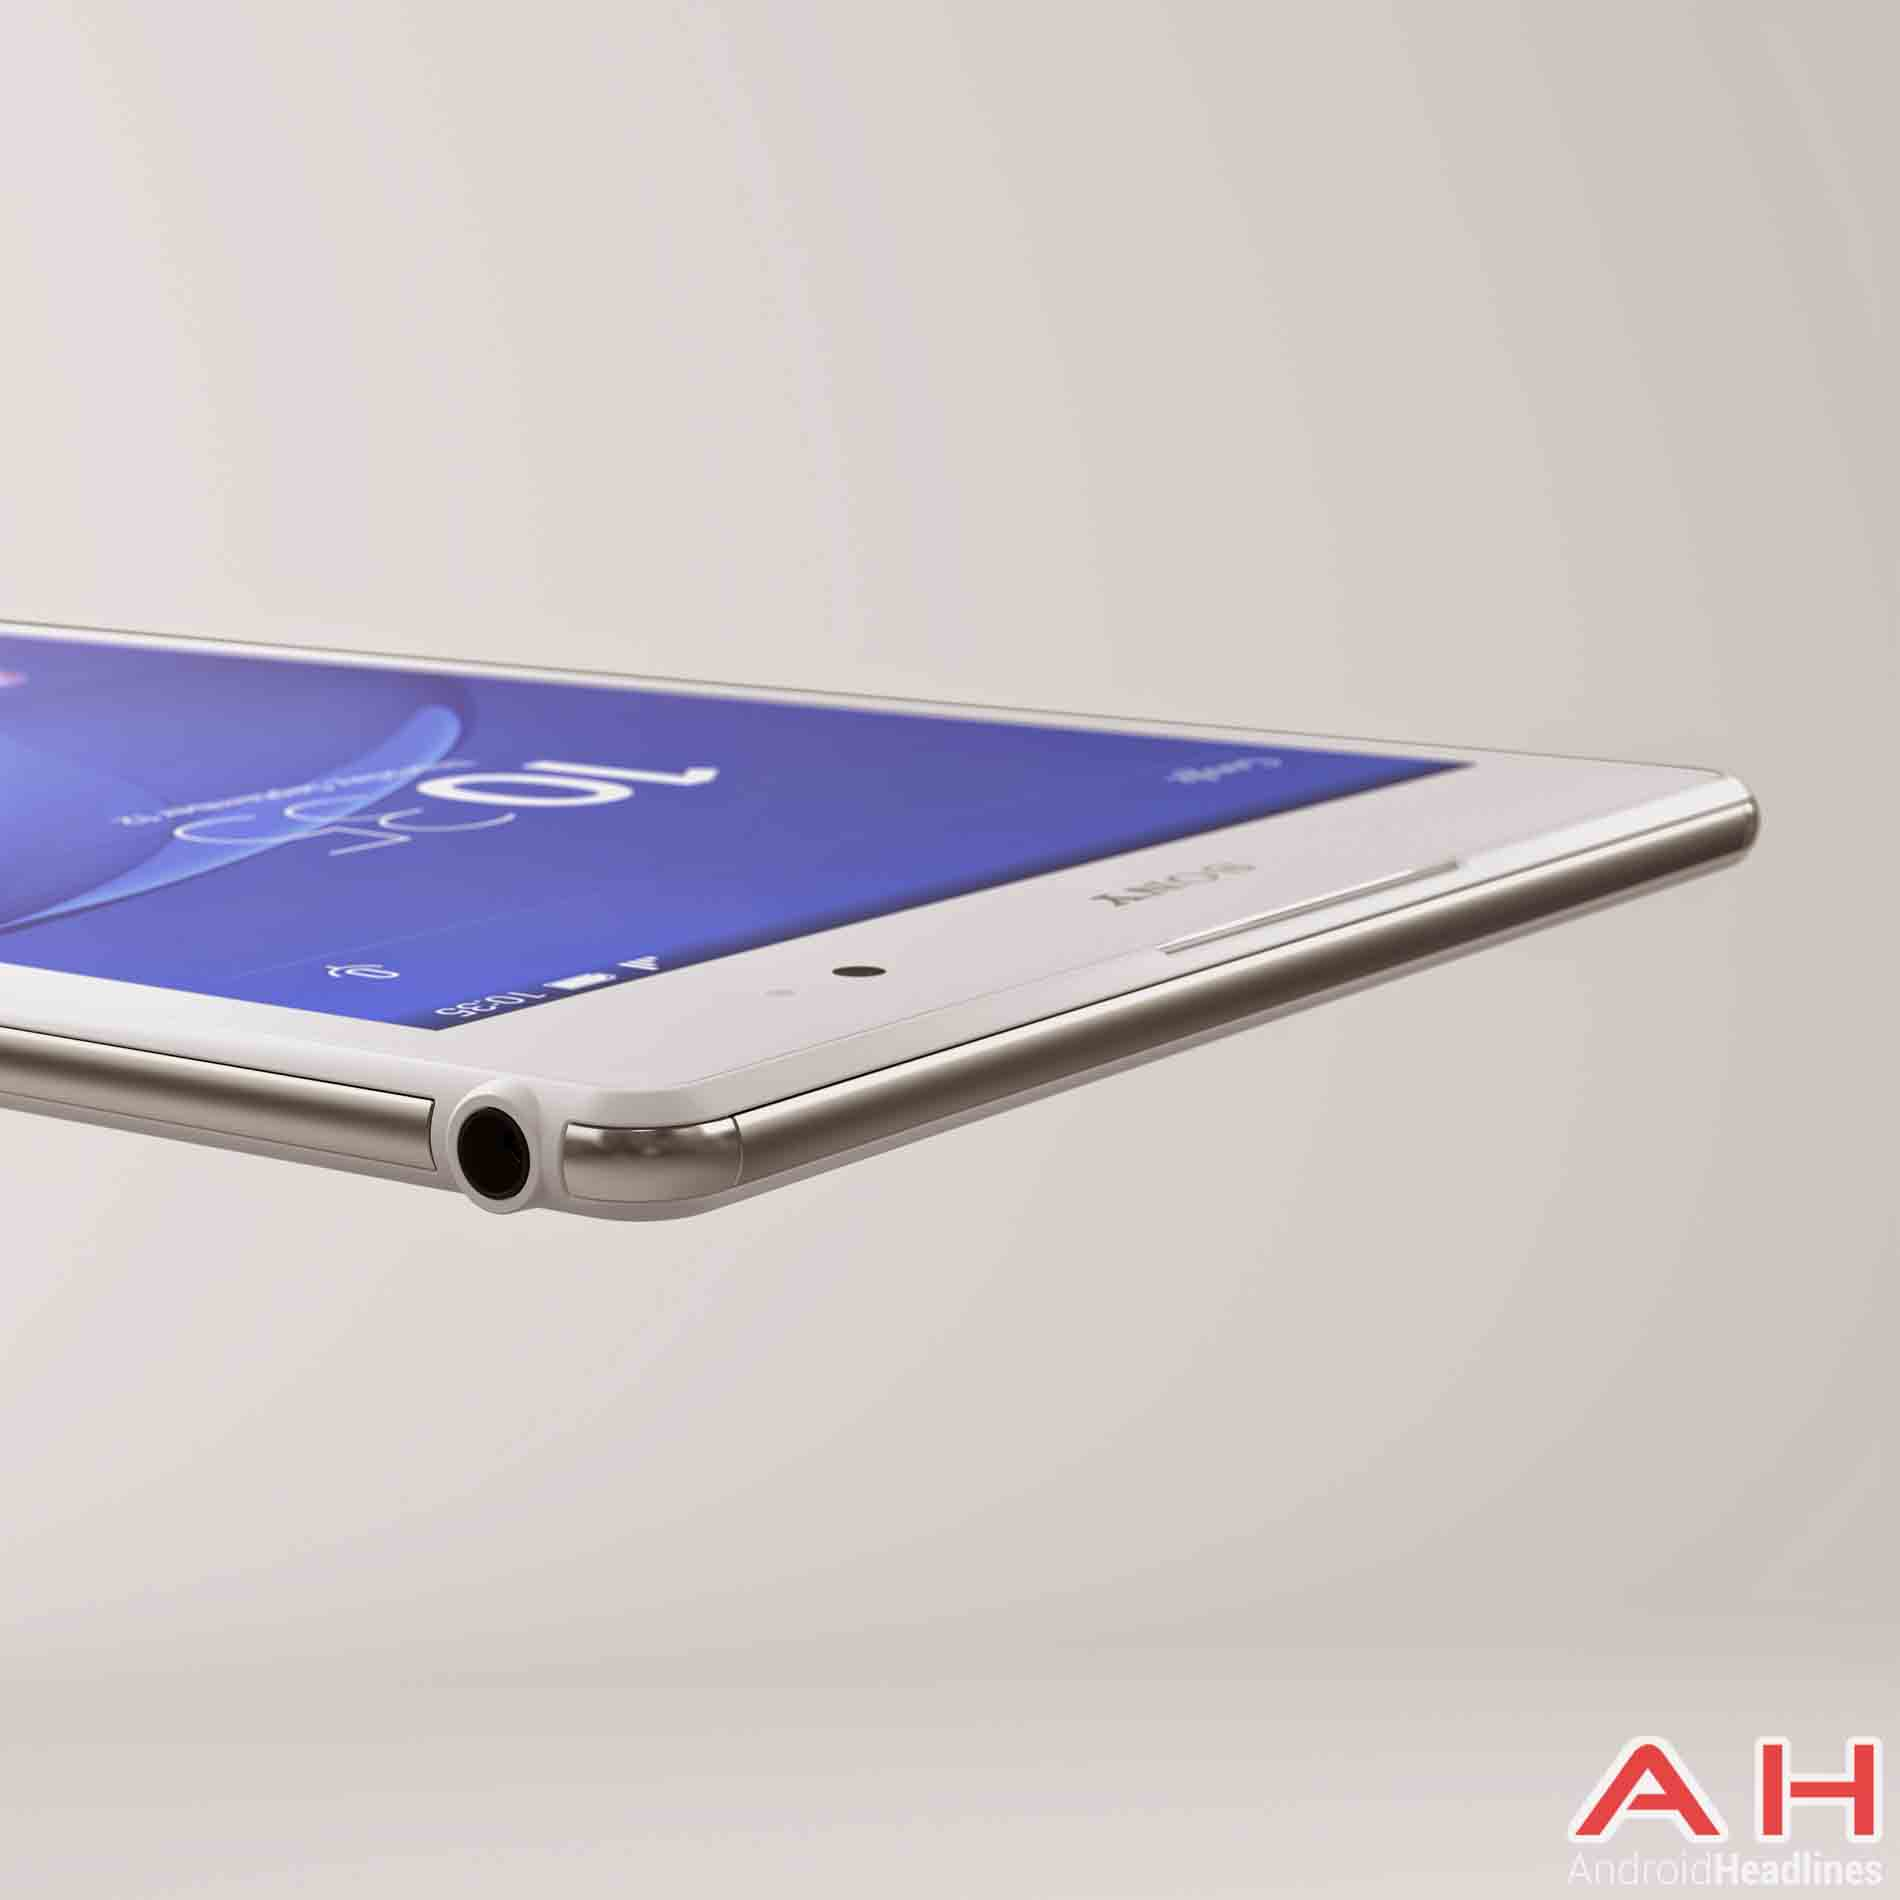 Sony-Xperia-Z3-Tablet-Compact-AH-9